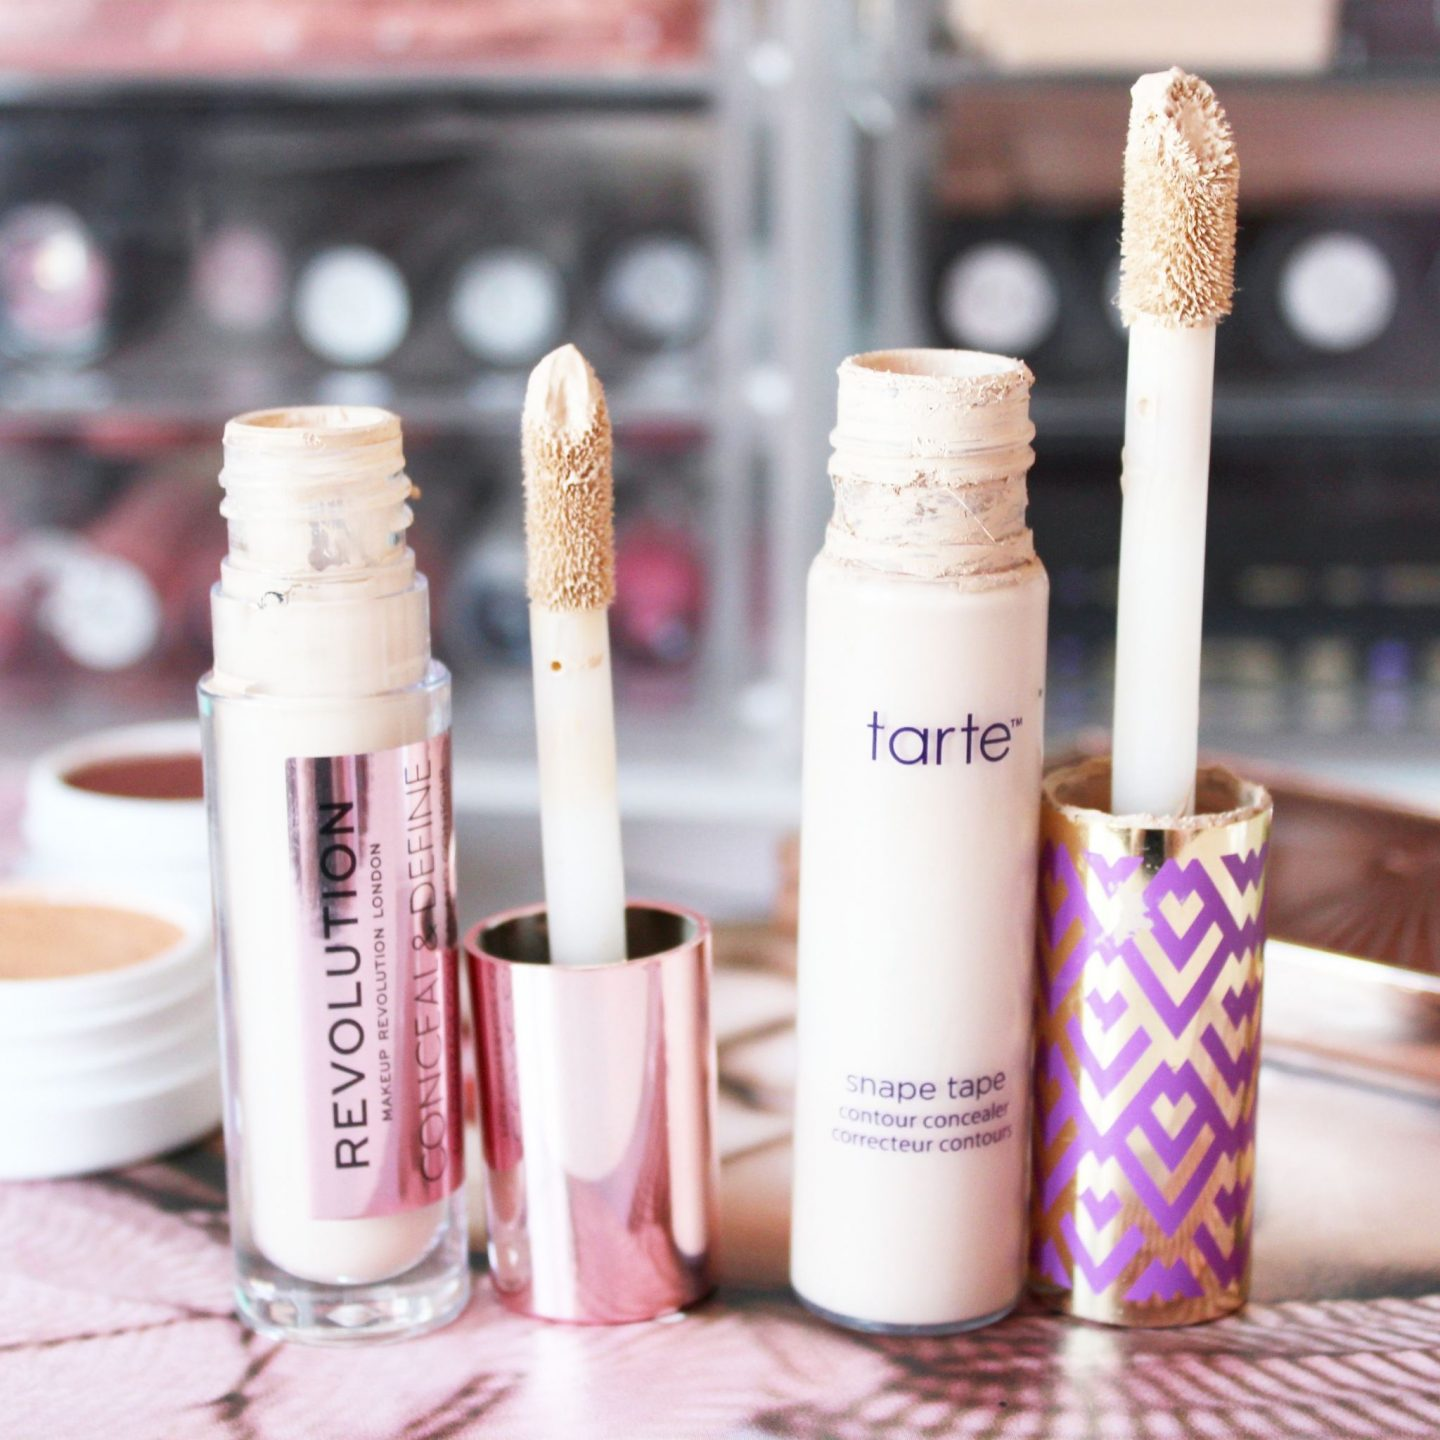 Makeup Revolution Conceal & Define Concealer | A Tarte Shape Tape Dupe?